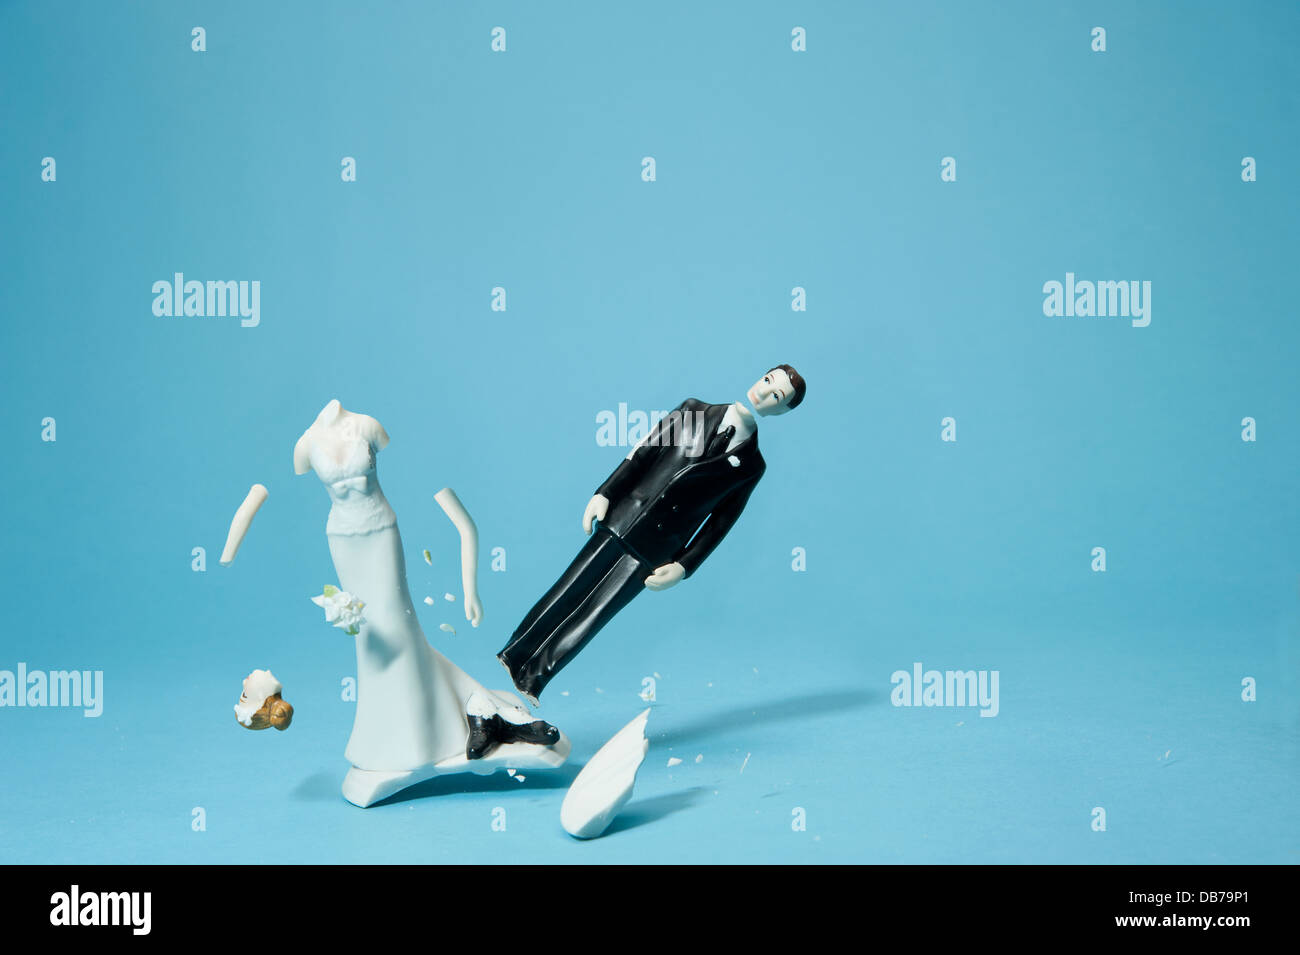 Bride and groom cake topper smashing apart - Stock Image